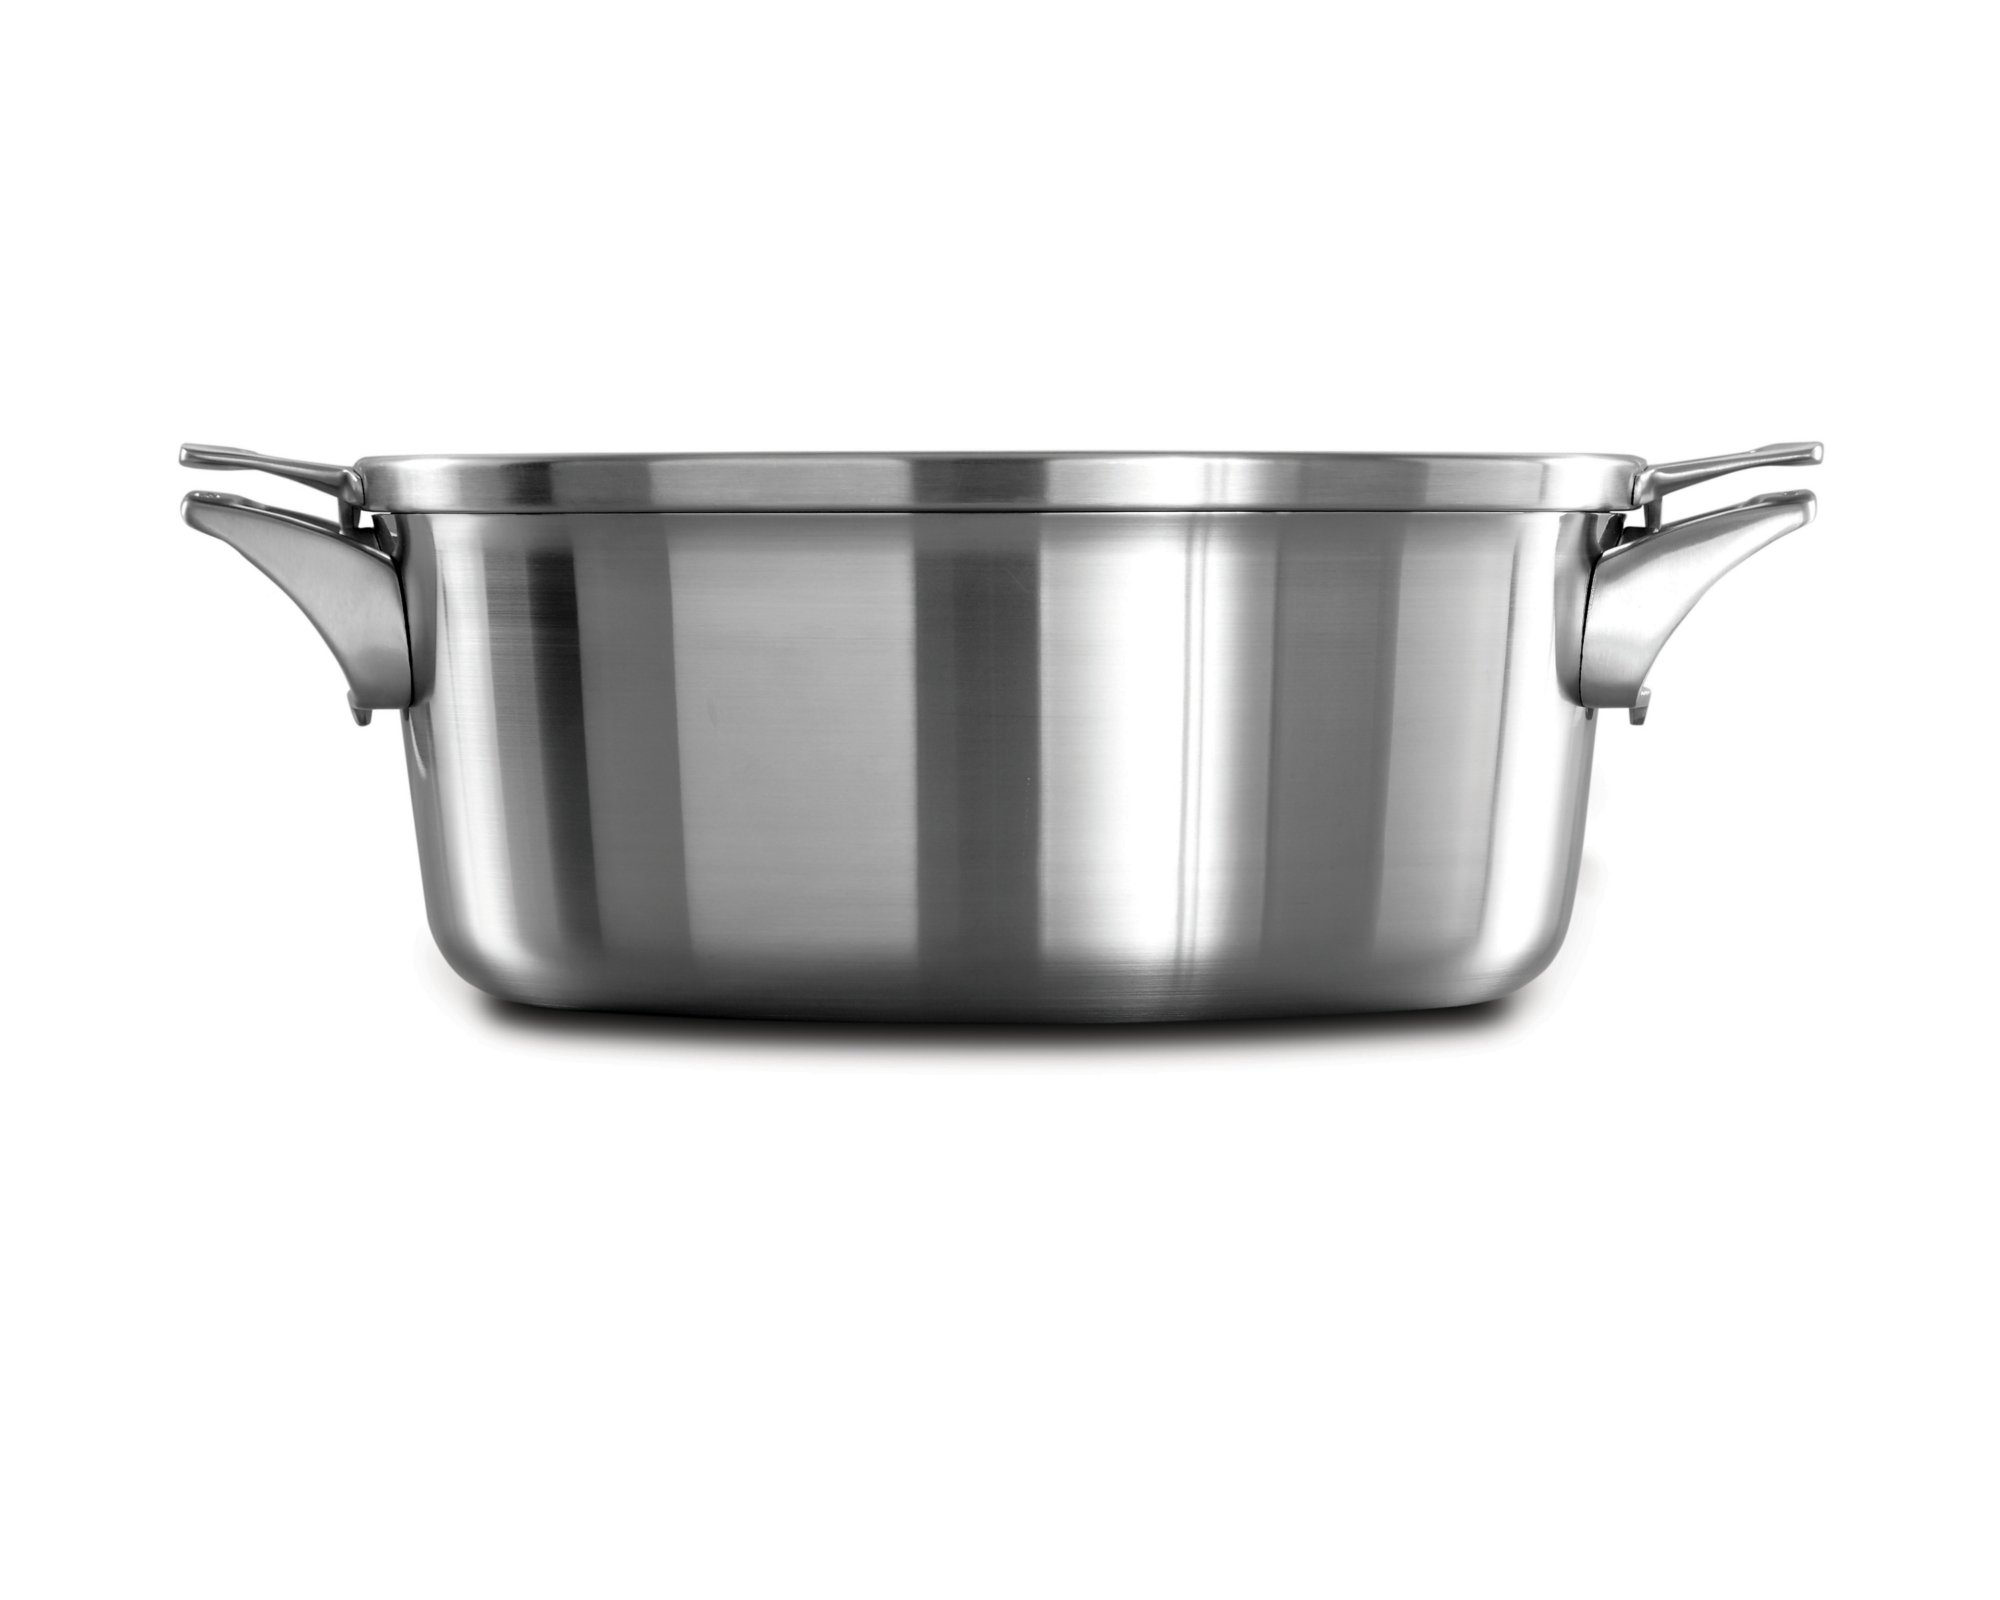 Calphalon Premier™ Space Saving Stainless Steel 8.5 qt. Dutch Oven with Cover